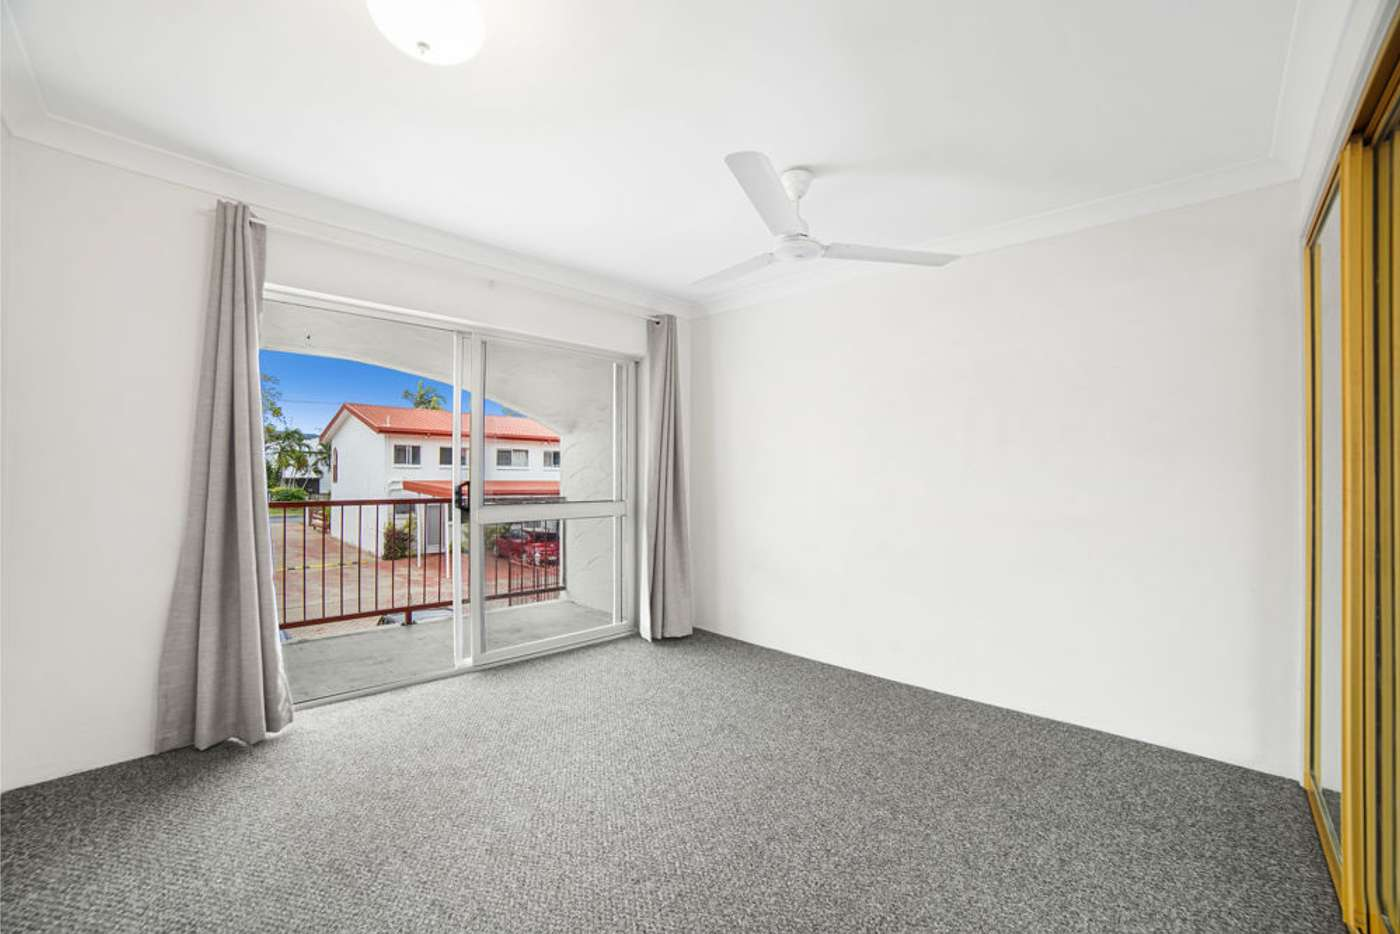 Seventh view of Homely townhouse listing, 11/28-30 Fairweather Street, Yorkeys Knob QLD 4878